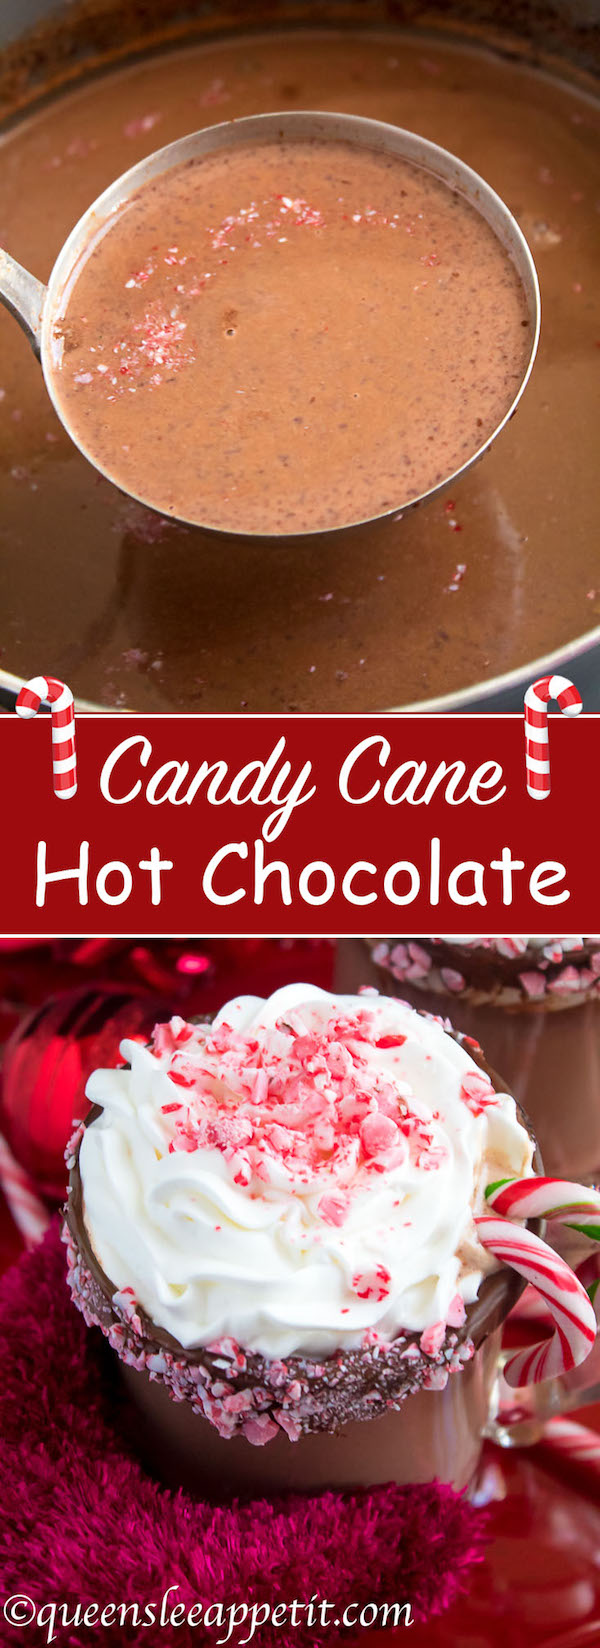 This Candy Cane Hot Chocolate is a warm and cozy Holiday drink perfect for warming up to the cold weather. With a candy cane lined rim, peppermint hot chocolate filled with crushed candy canes, and a peppermint whipped cream topping, this drink screams Christmas!